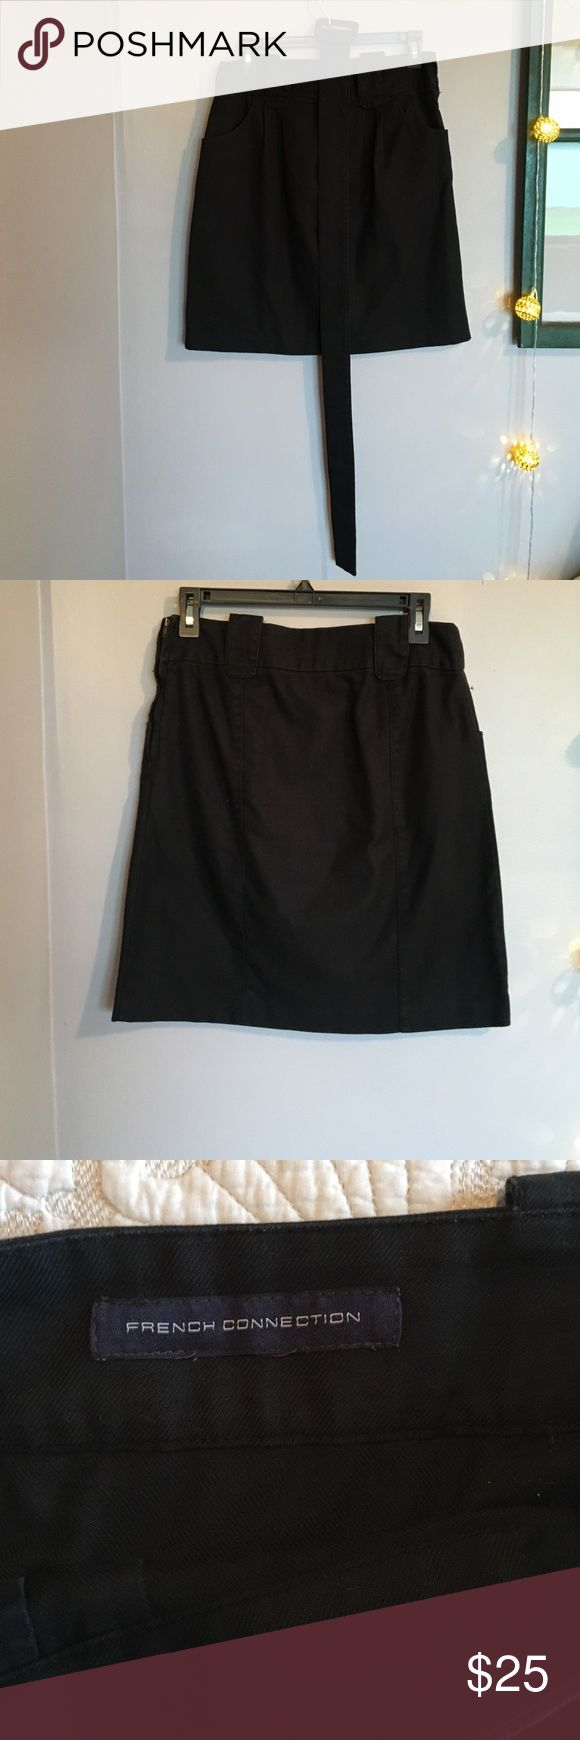 French Connection Black Cotton Skirt w belt Comes with detachable belt.  no size inside but this is a 4.  lightly worn. almost has the look of dark denim.  high waisted. French Connection Skirts Midi